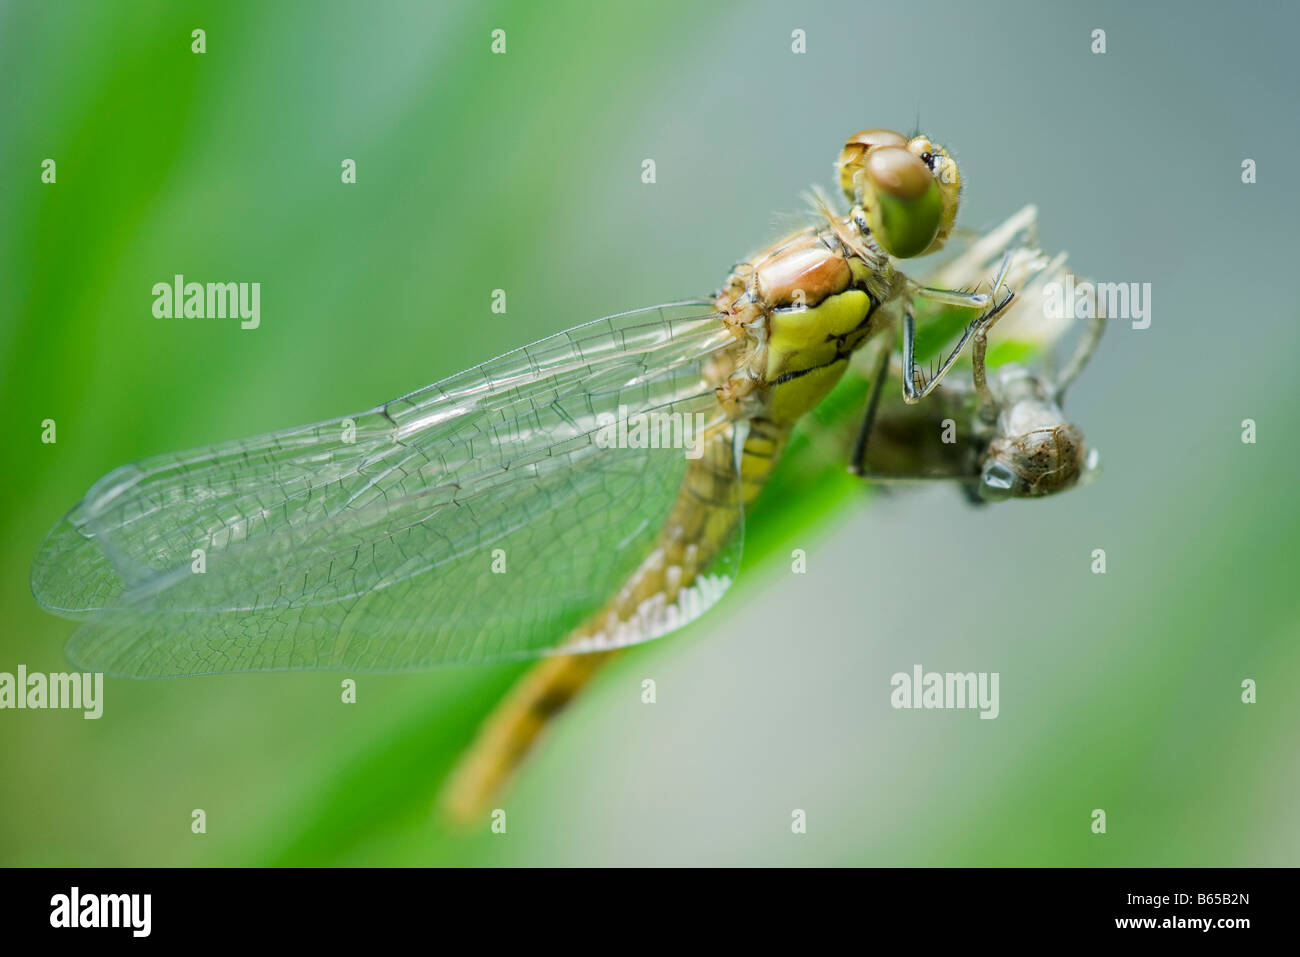 Dragonfly newly emerged from old exoskeleton drying wings - Stock Image